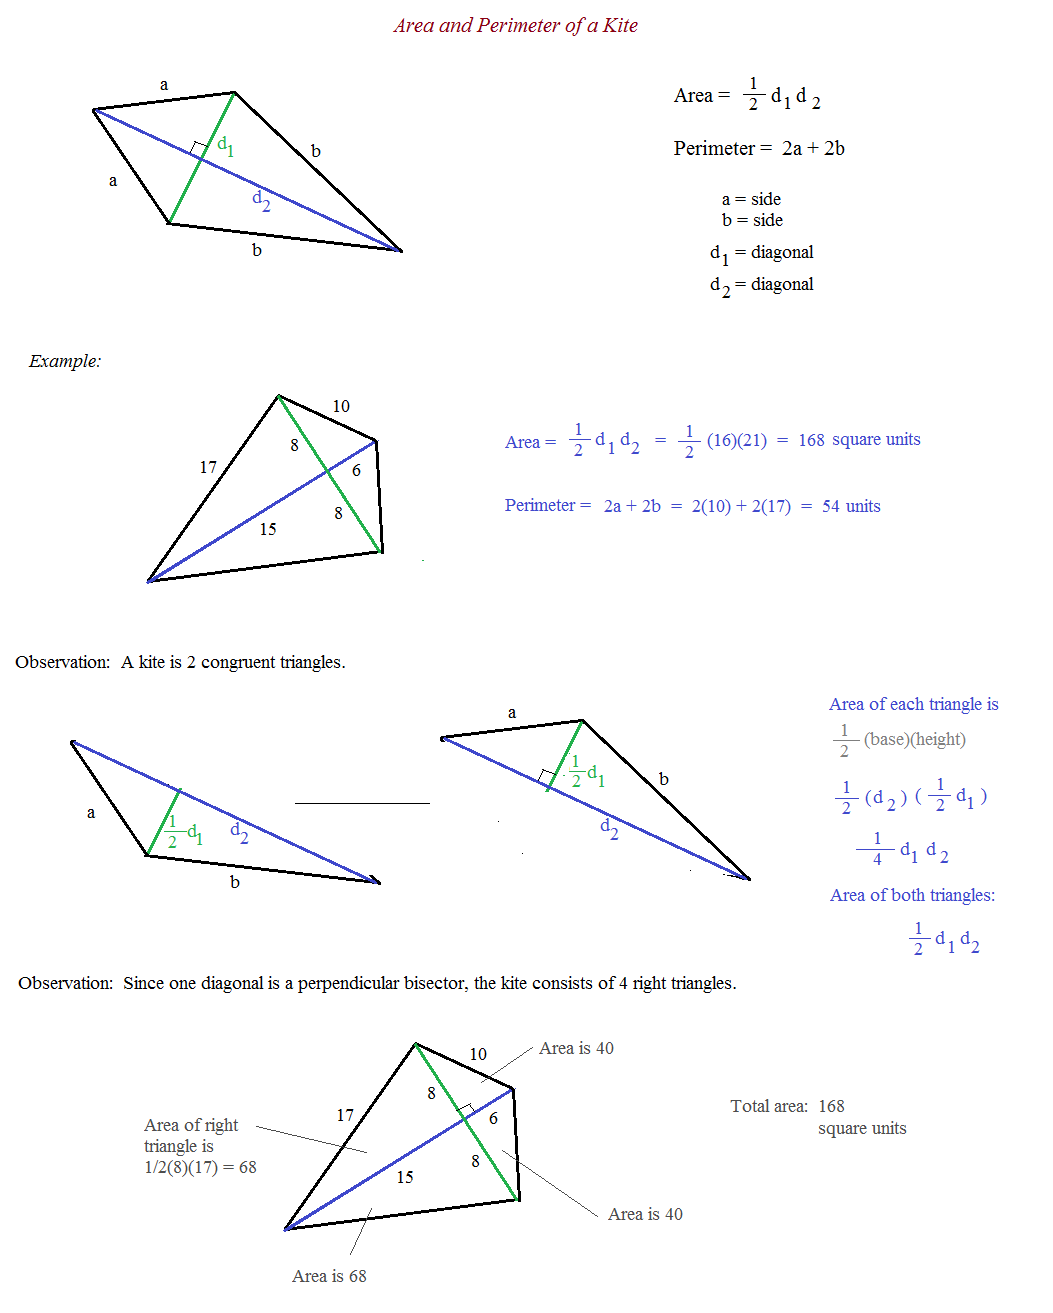 worksheet Area And Perimeter Of A Triangle Worksheet math plane area and perimeter of polygons 1 kite